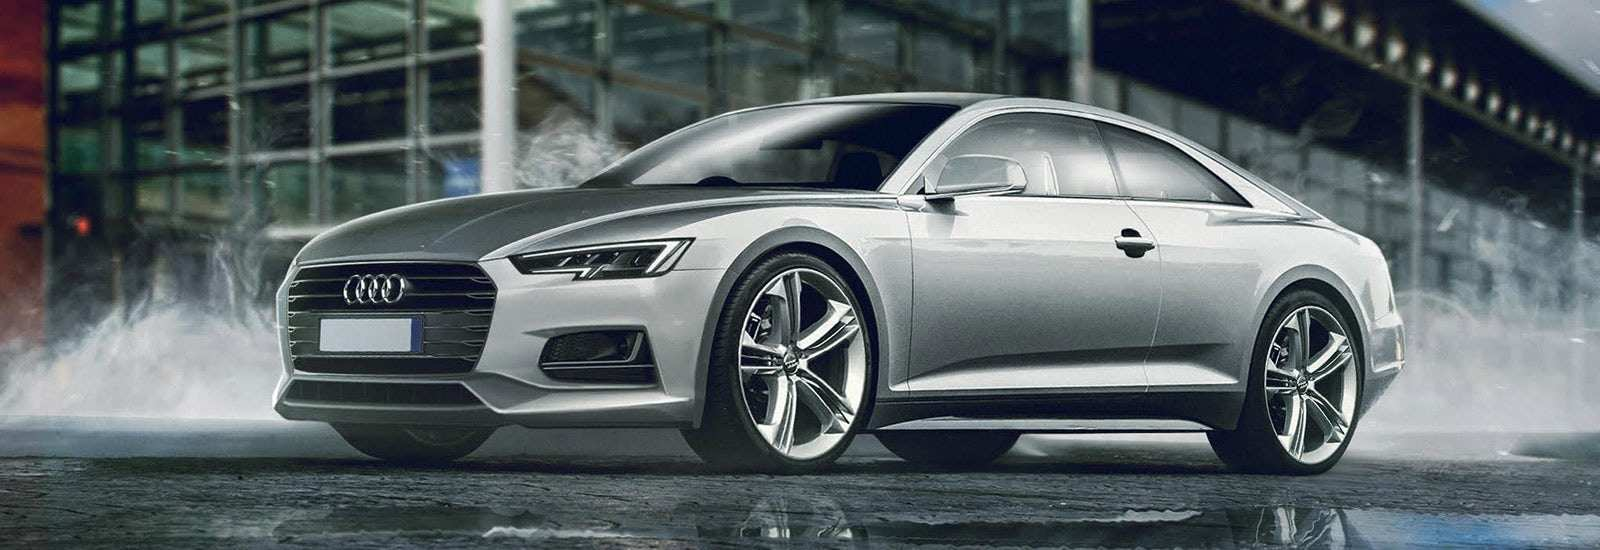 17 New Audi A9 Price Redesign and Concept with Audi A9 Price